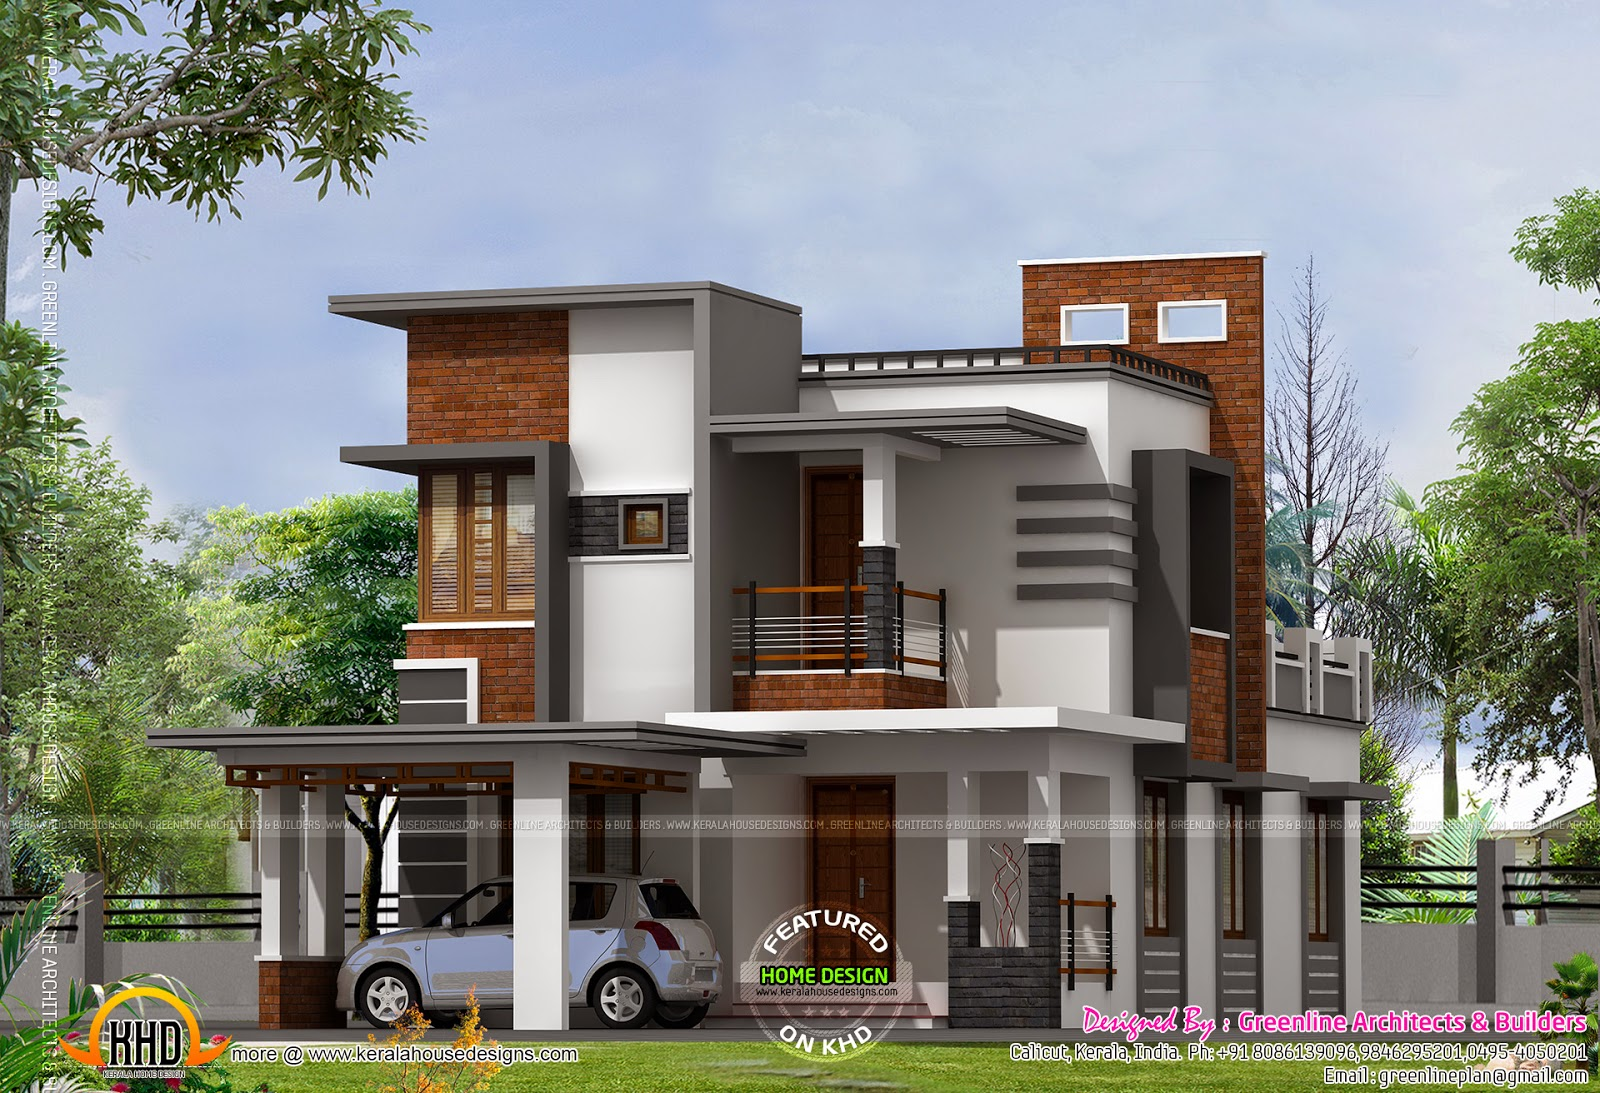 Low cost contemporary house kerala home design and floor for Contemporary homes images